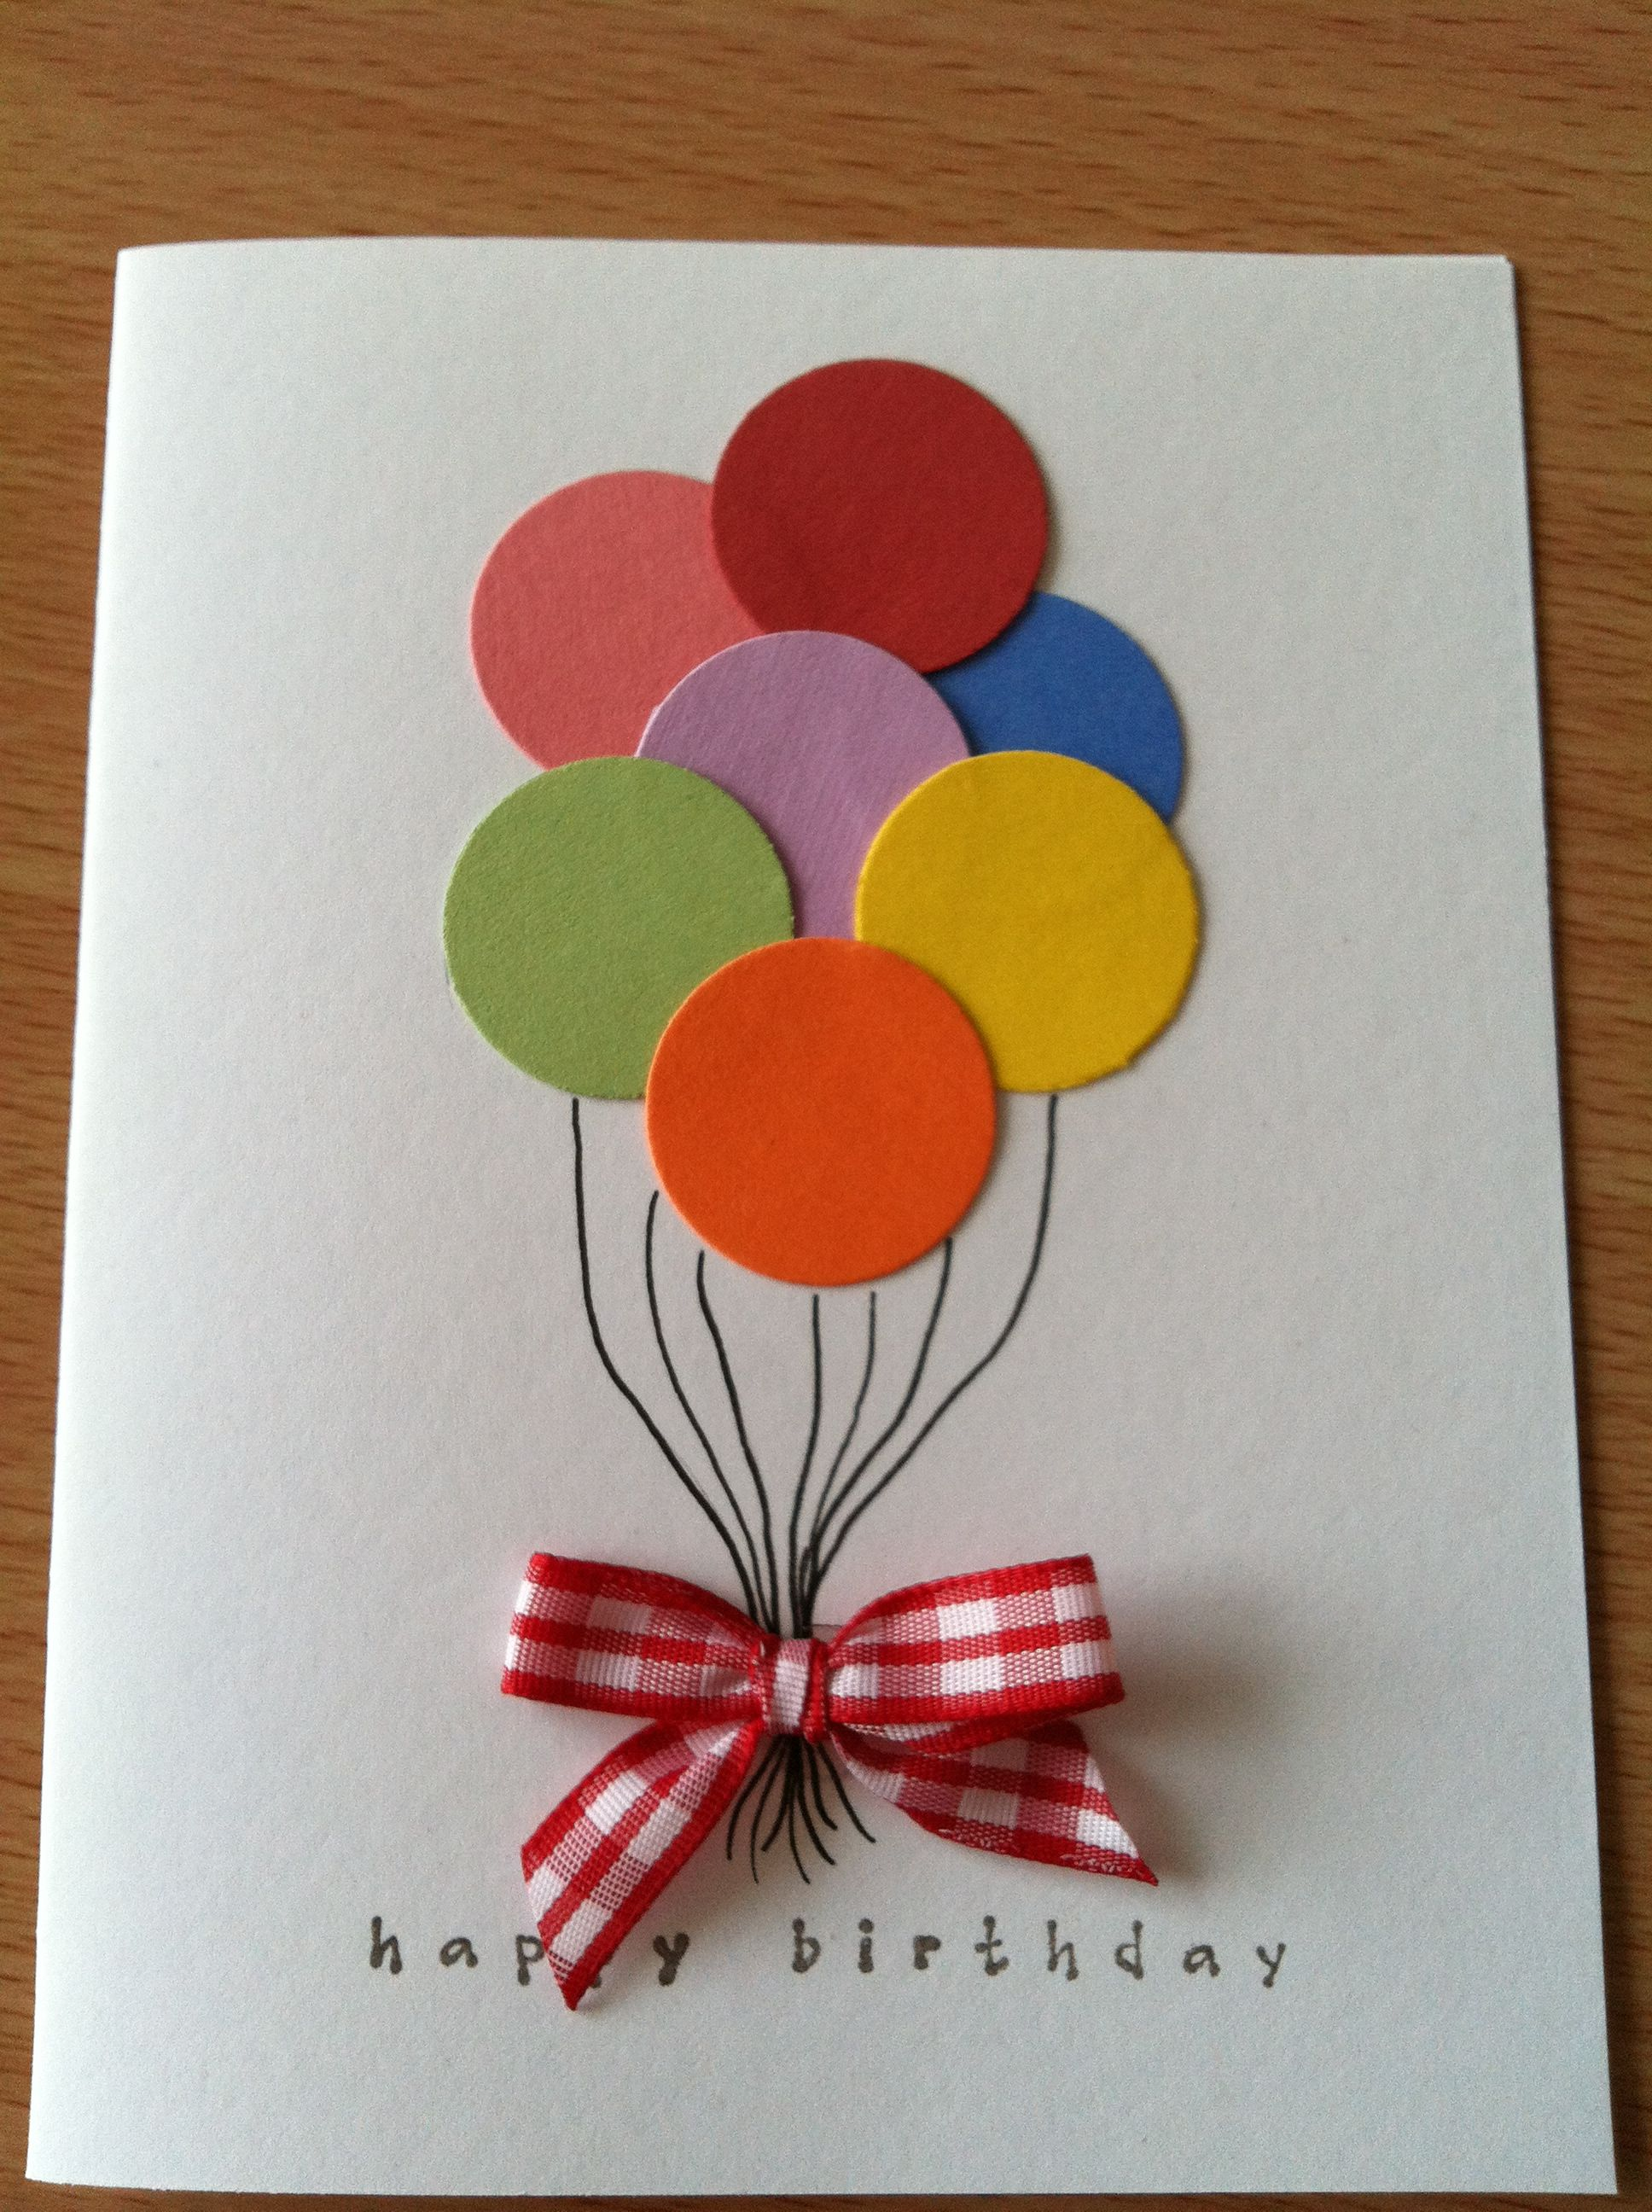 Happy Birthday Balloons Greeting Card with sewn paper